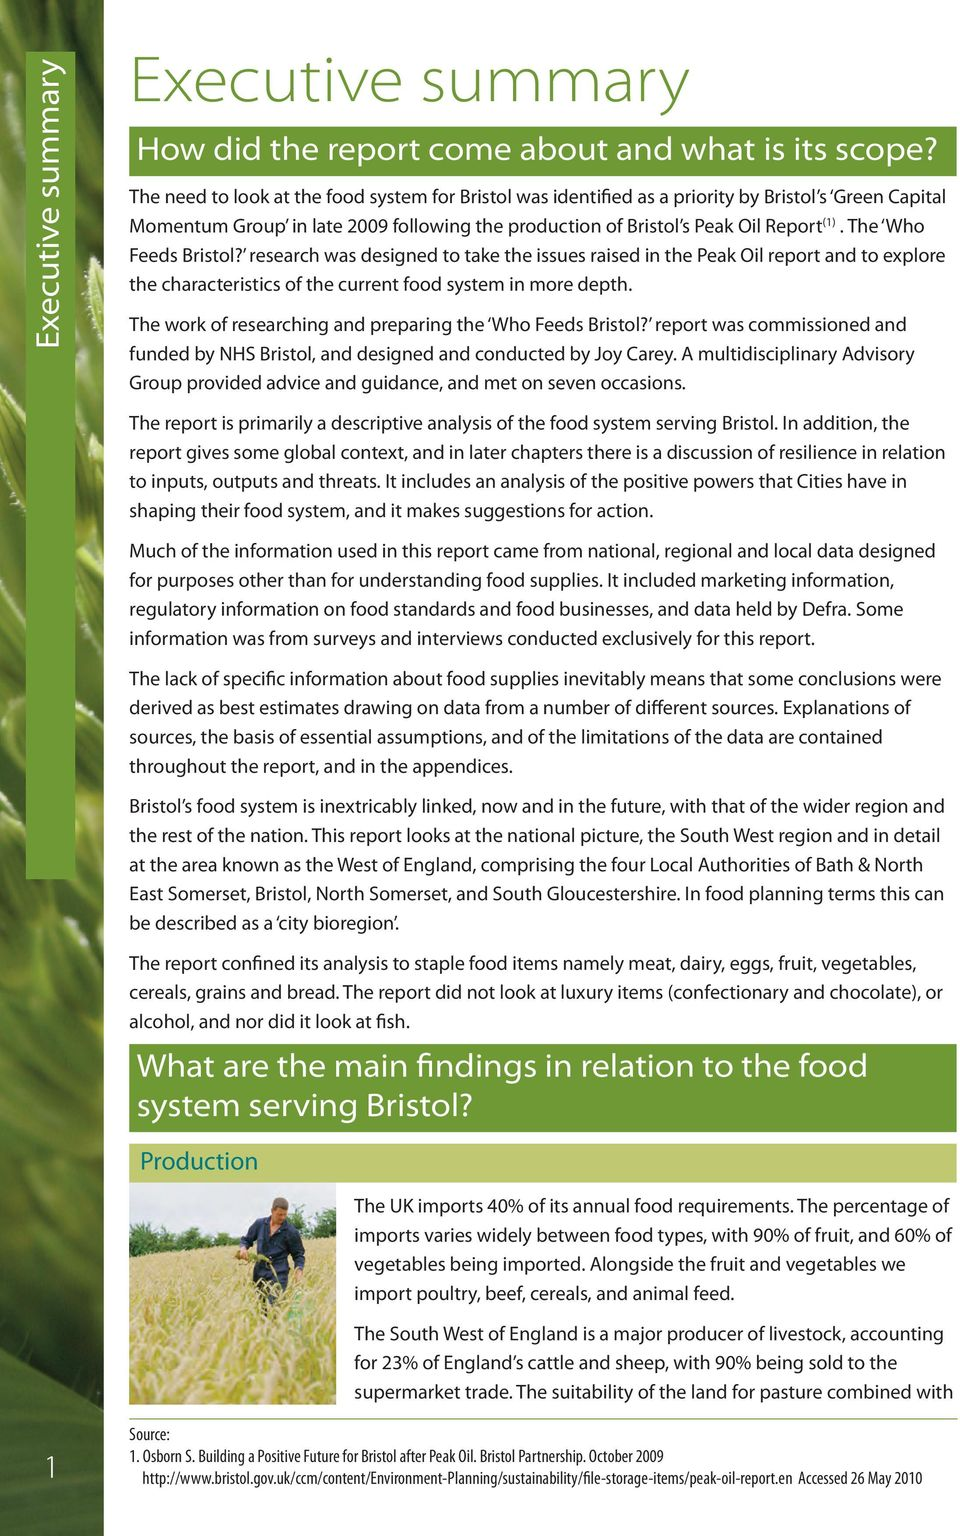 The Who Feeds Bristol? research was designed to take the issues raised in the Peak Oil report and to explore the characteristics of the current food system in more depth.